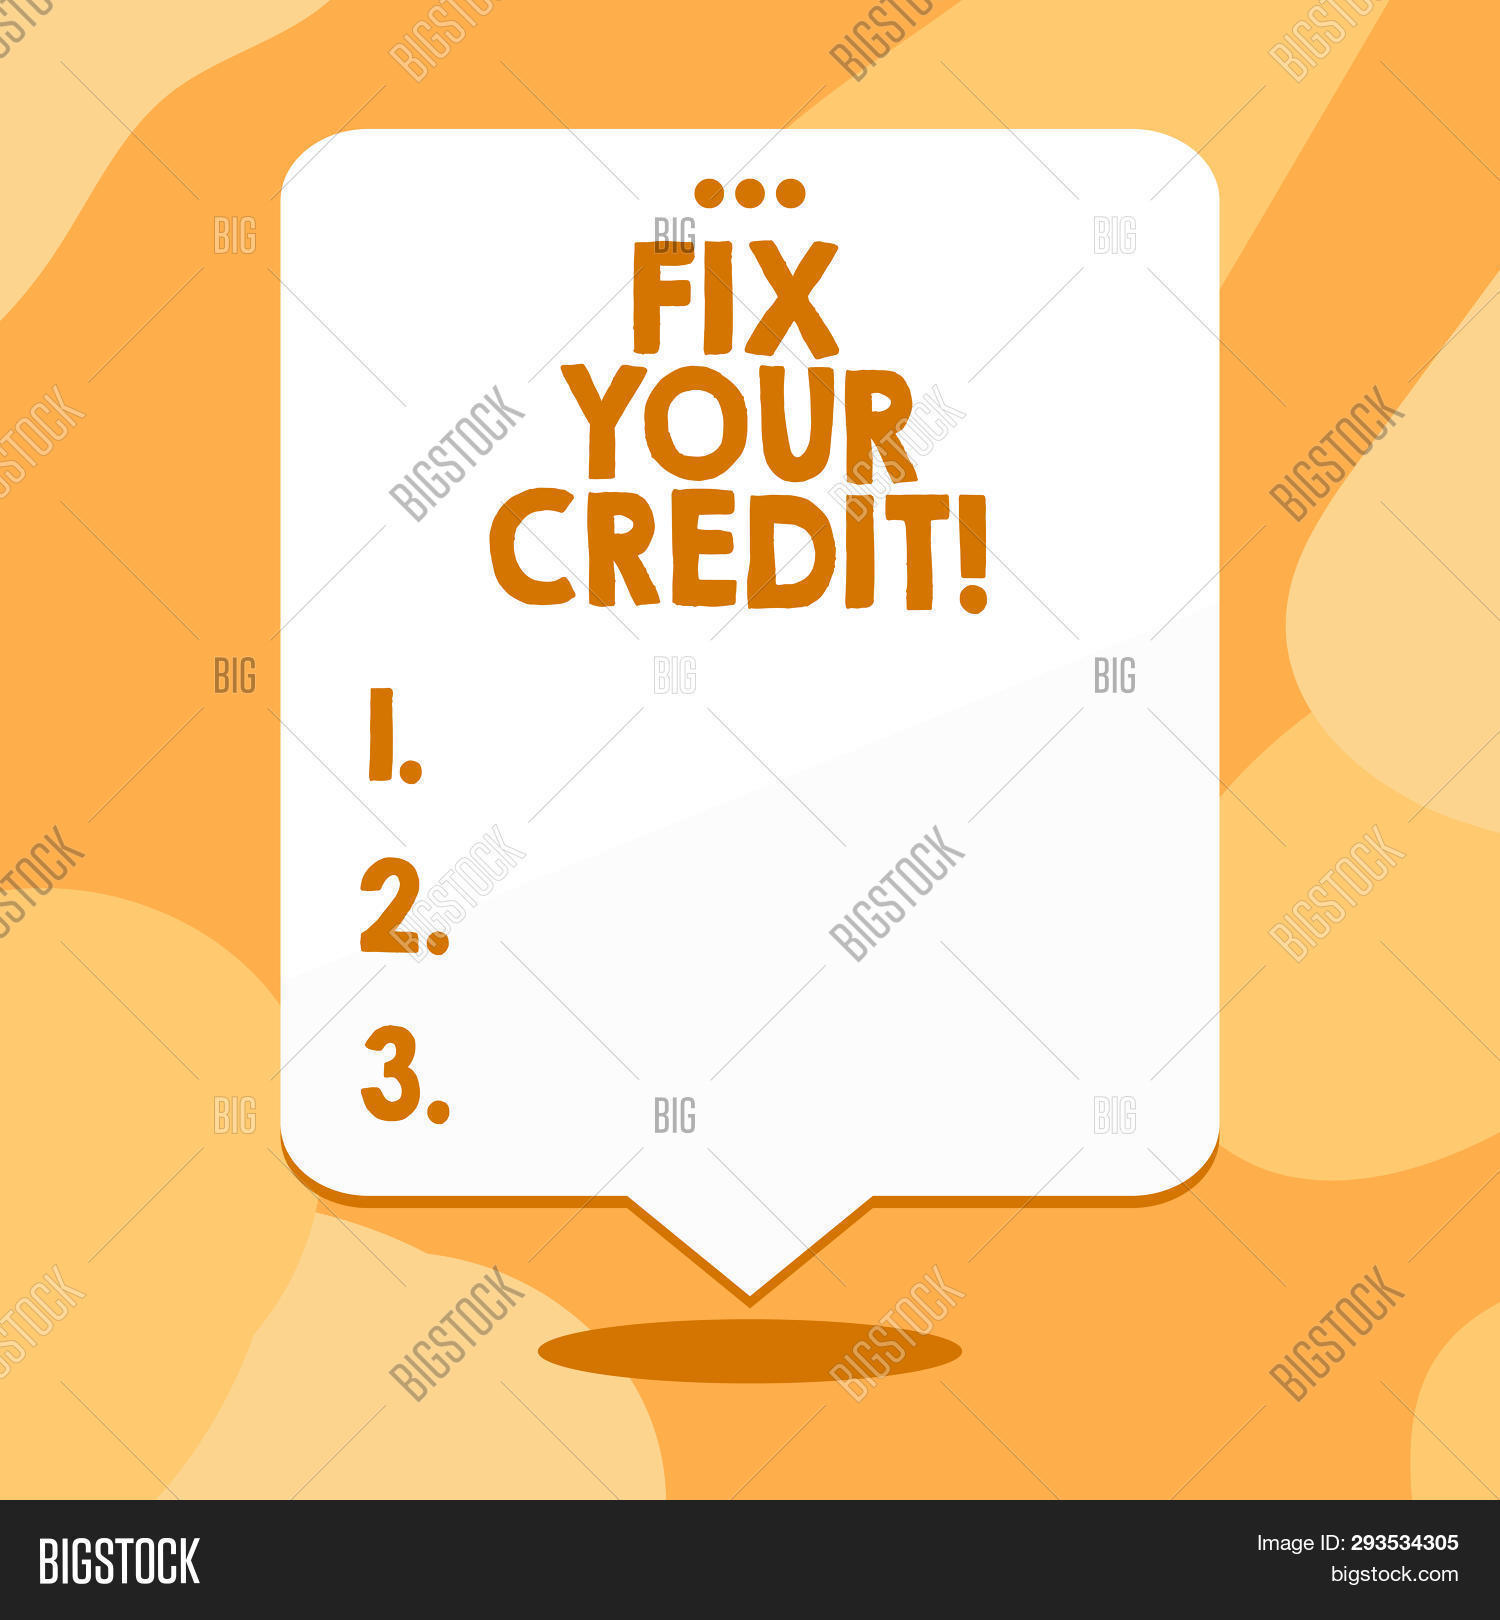 application,apply,applying,approval,approve,bad,bank,banking,better,borrow,borrower,cards,credit,creditors,debt,finance,financing,fix,fixed,fixing,funding,funds,good,great,help,improve,improvement,increase,loan,loaning,money,mortgage,off,pay,poor,problem,raise,rate,rating,rise,score,tips,worthiness,worthy,your